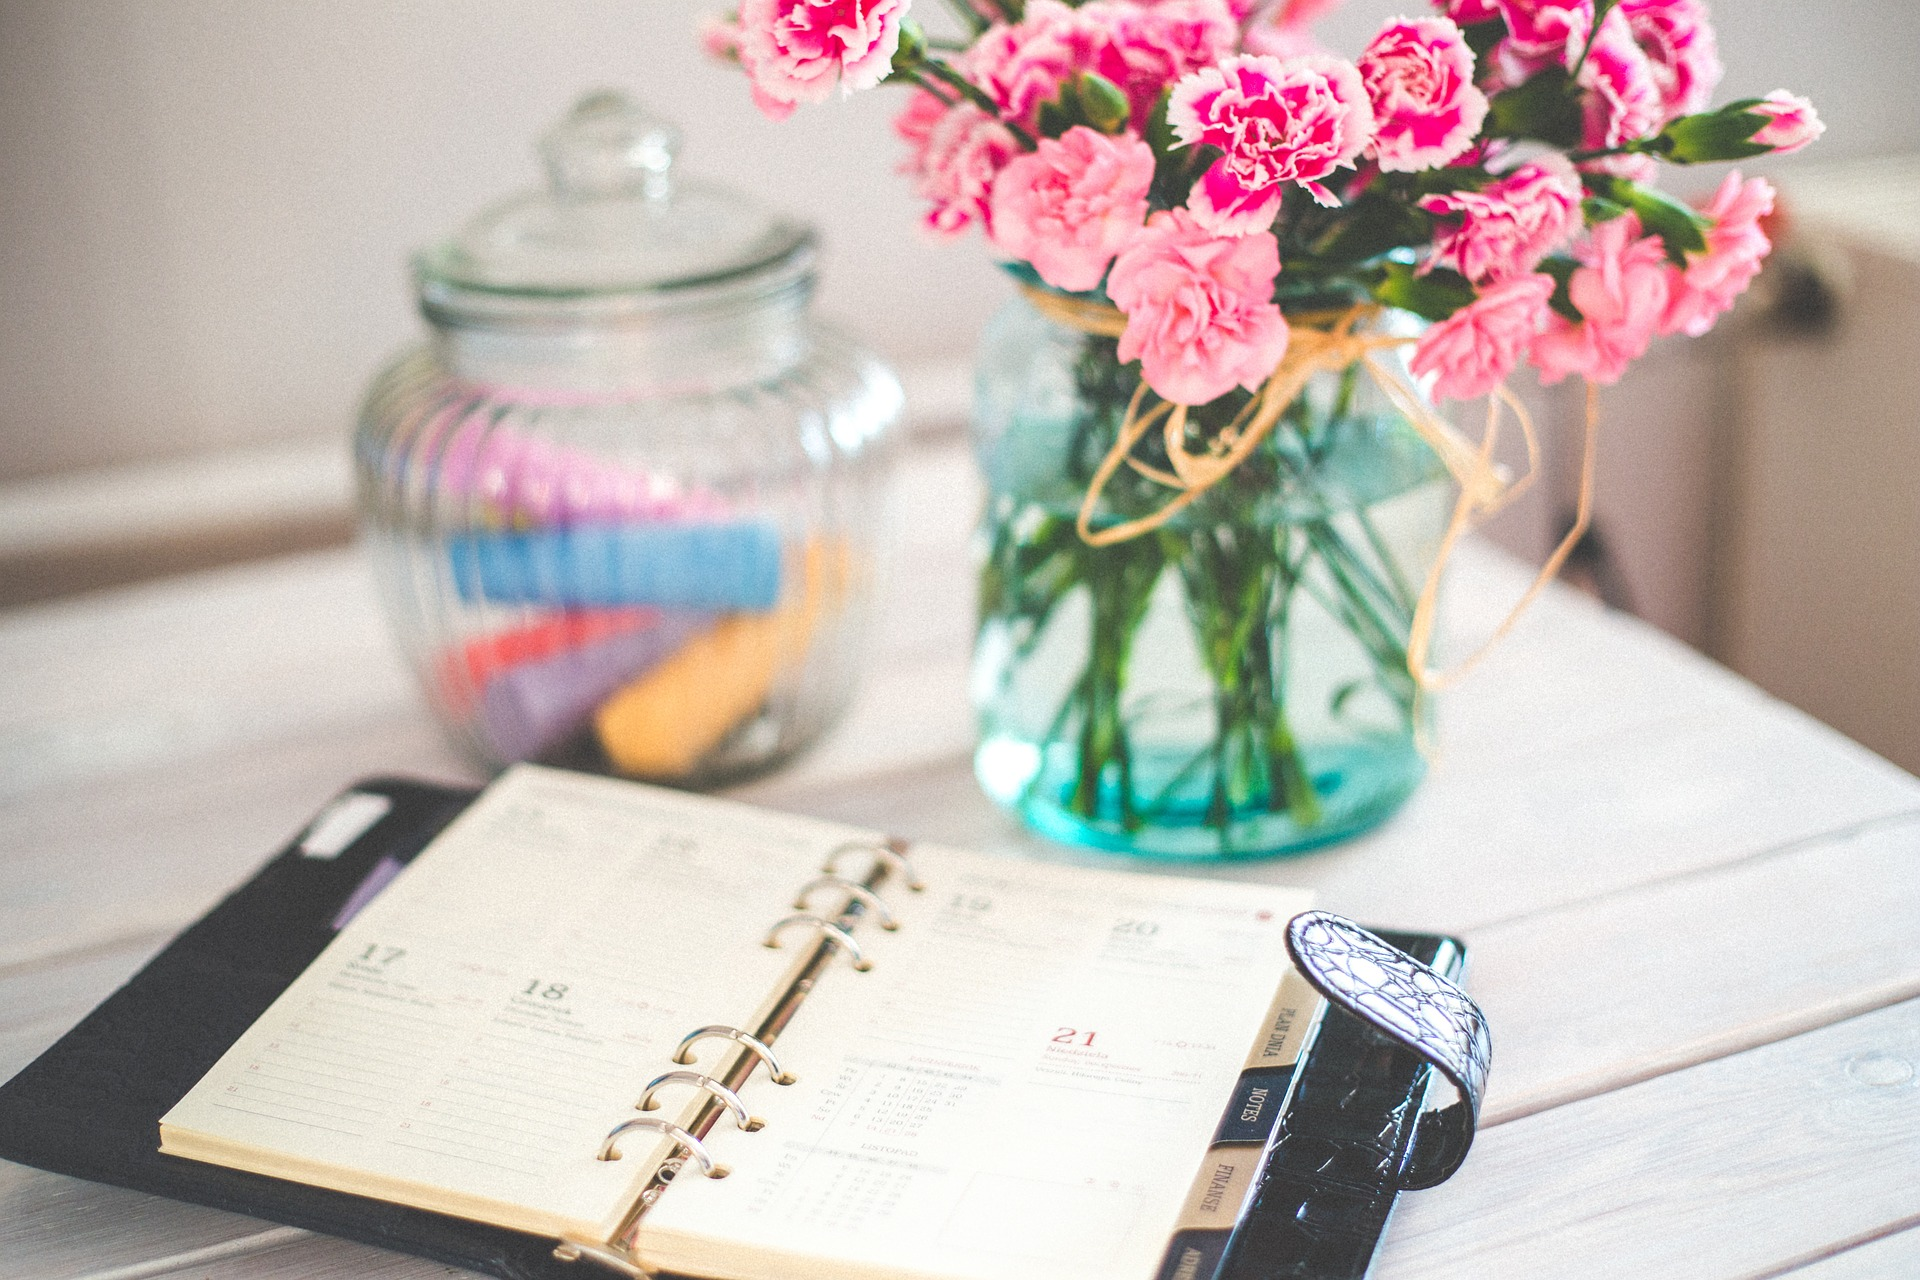 diary organizer and pink flowers